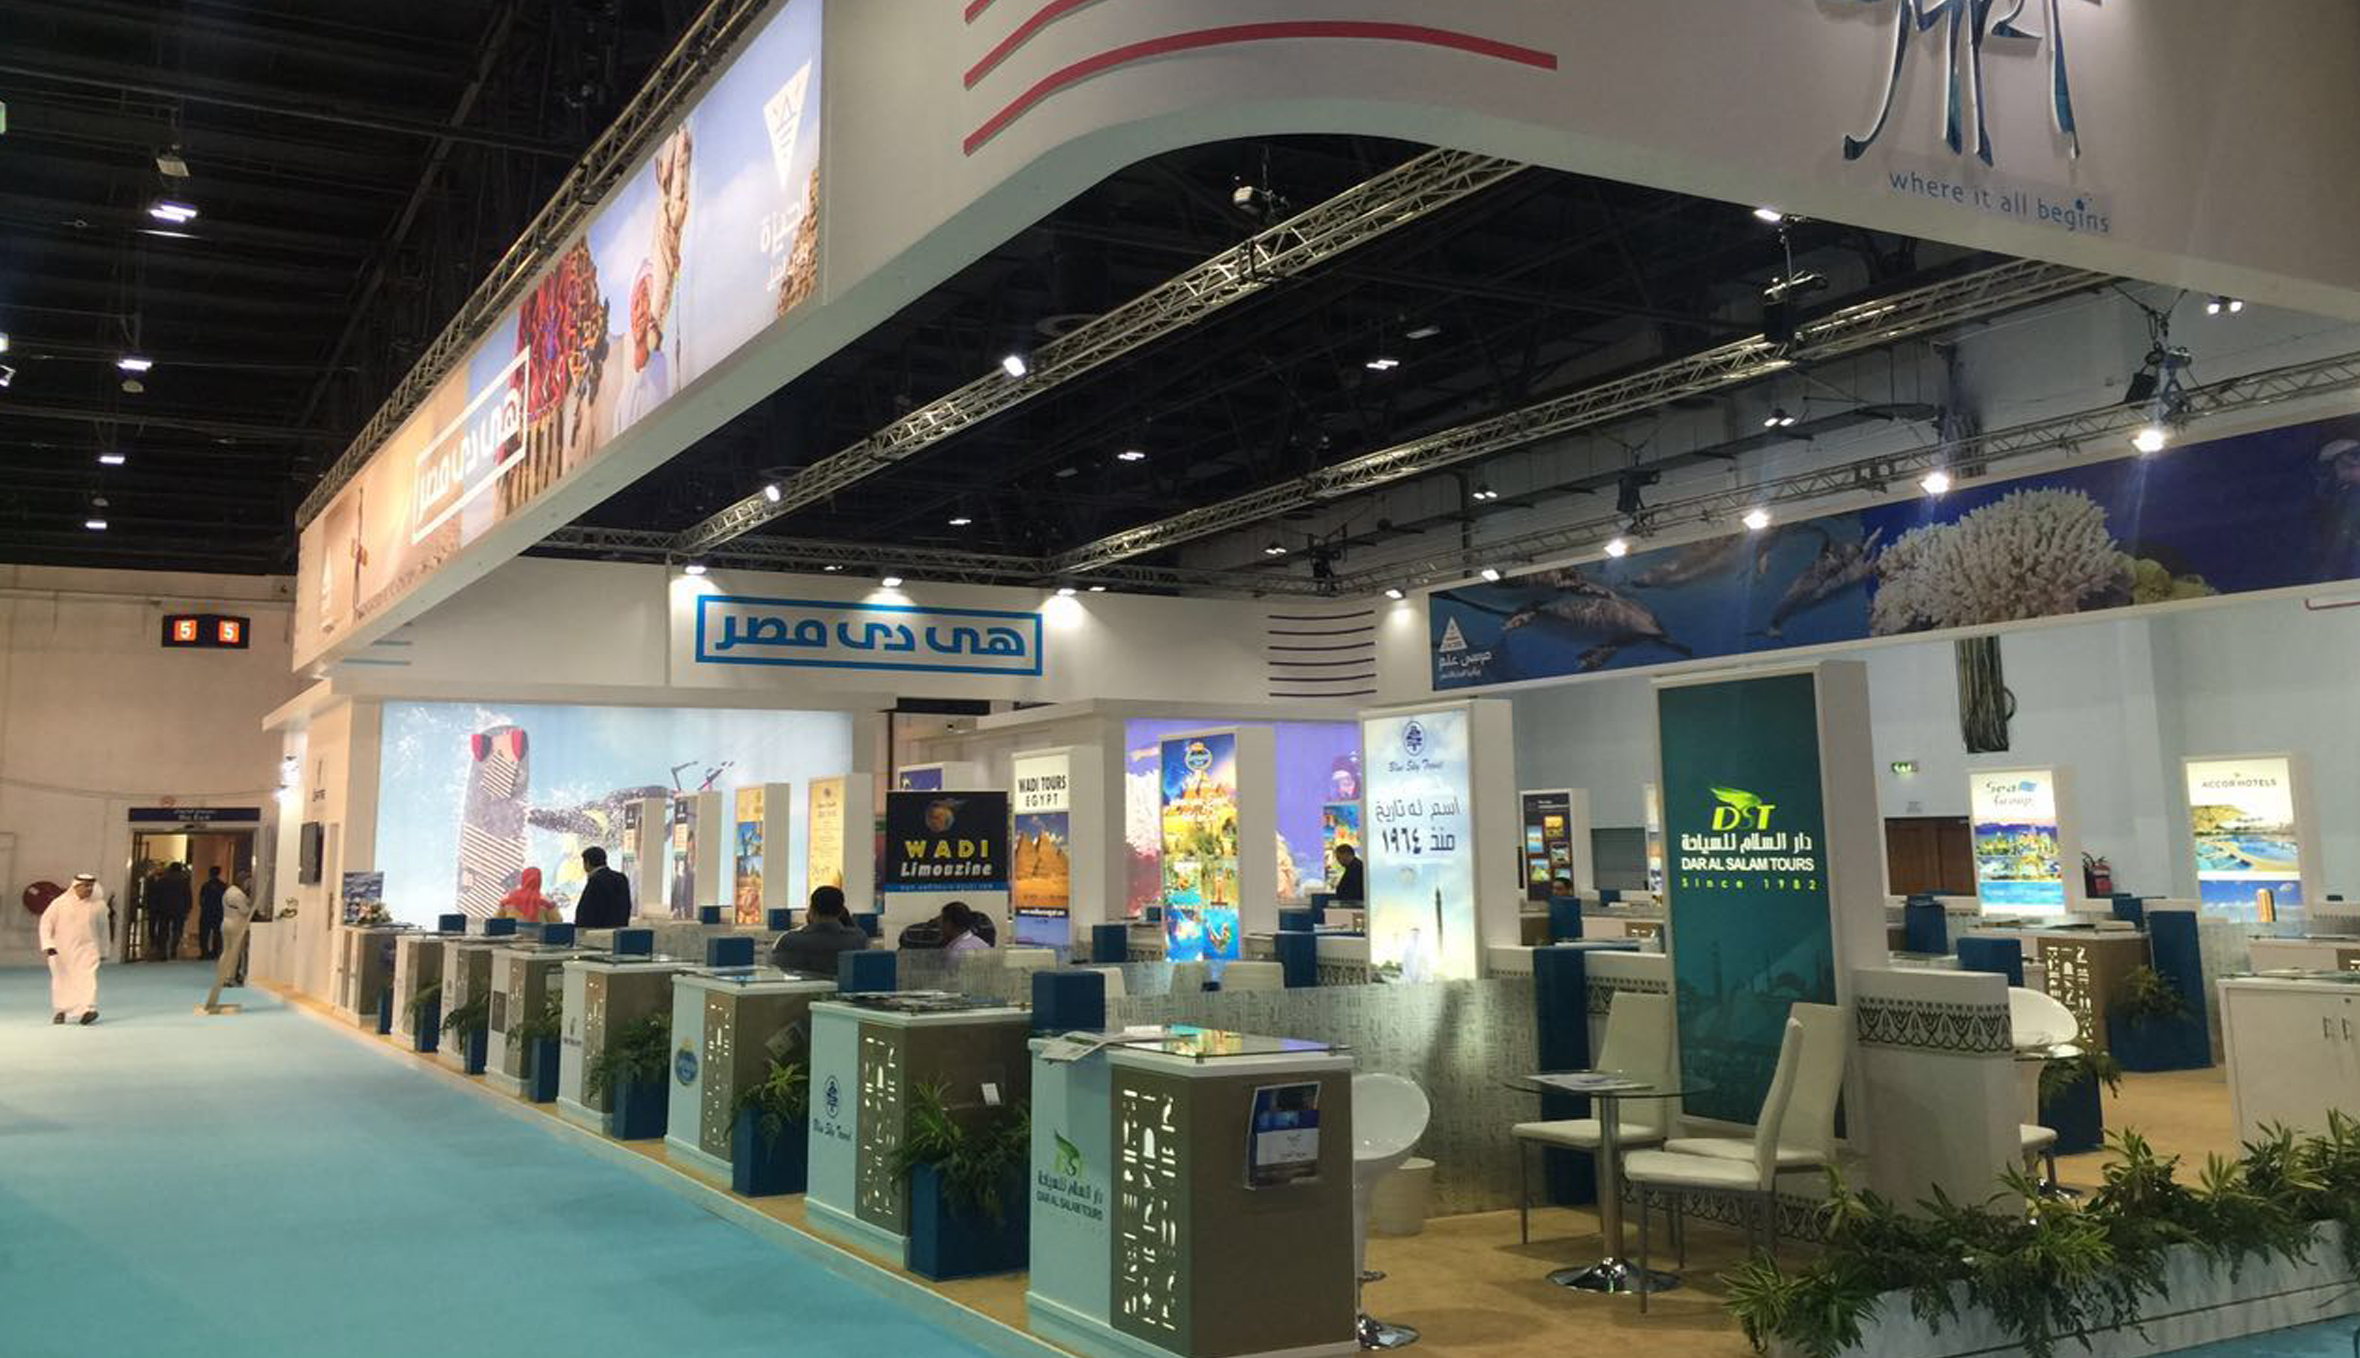 Exhibition Stand For Rent Dubai : Egypt pavilion exhibition stand servcies uae dubai